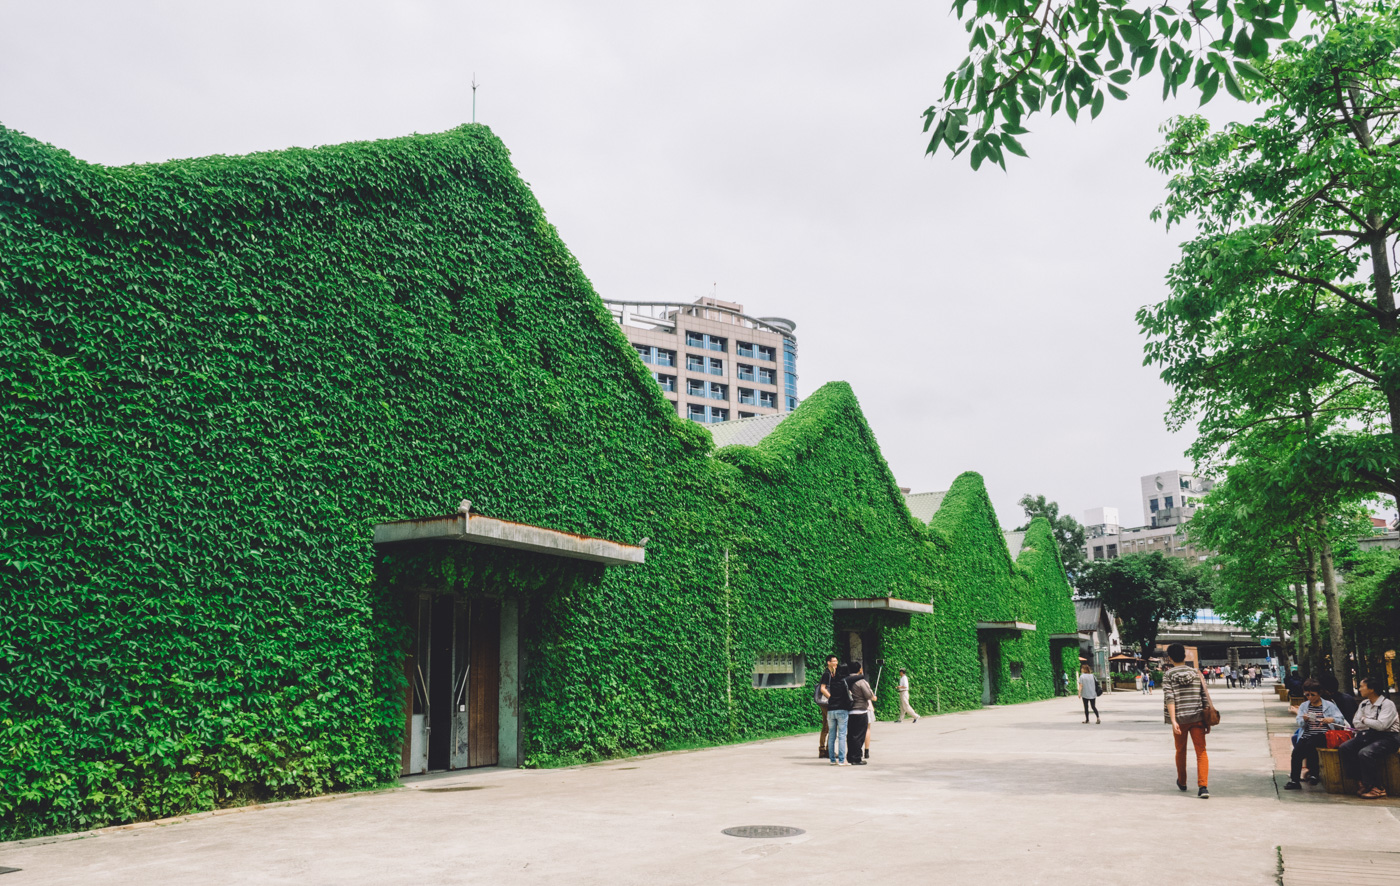 Taiwan - Huashan 1914 Creative Park - Green buildings